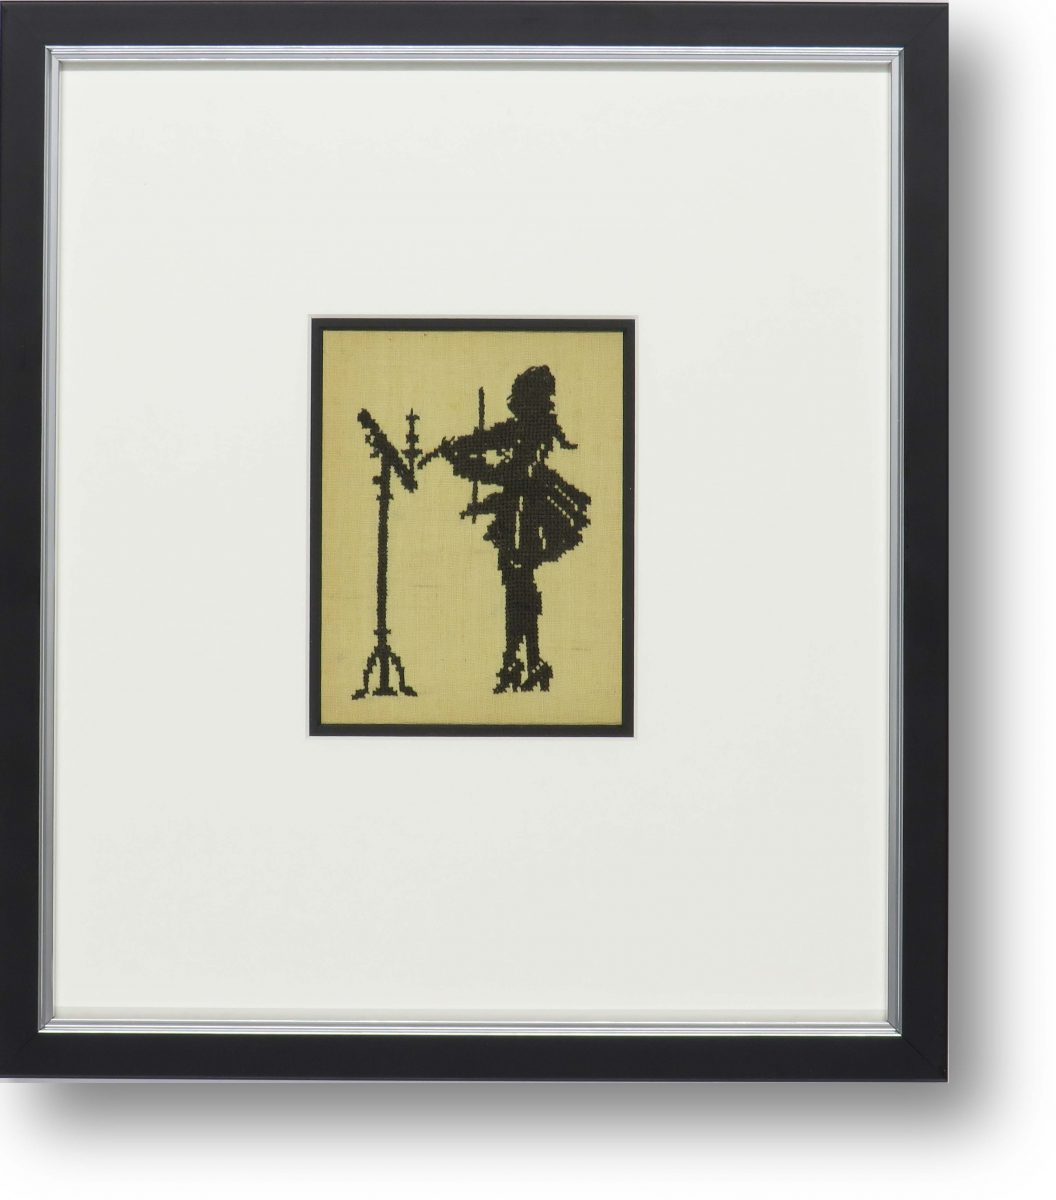 A silhouette in a very simple, stylish black frame